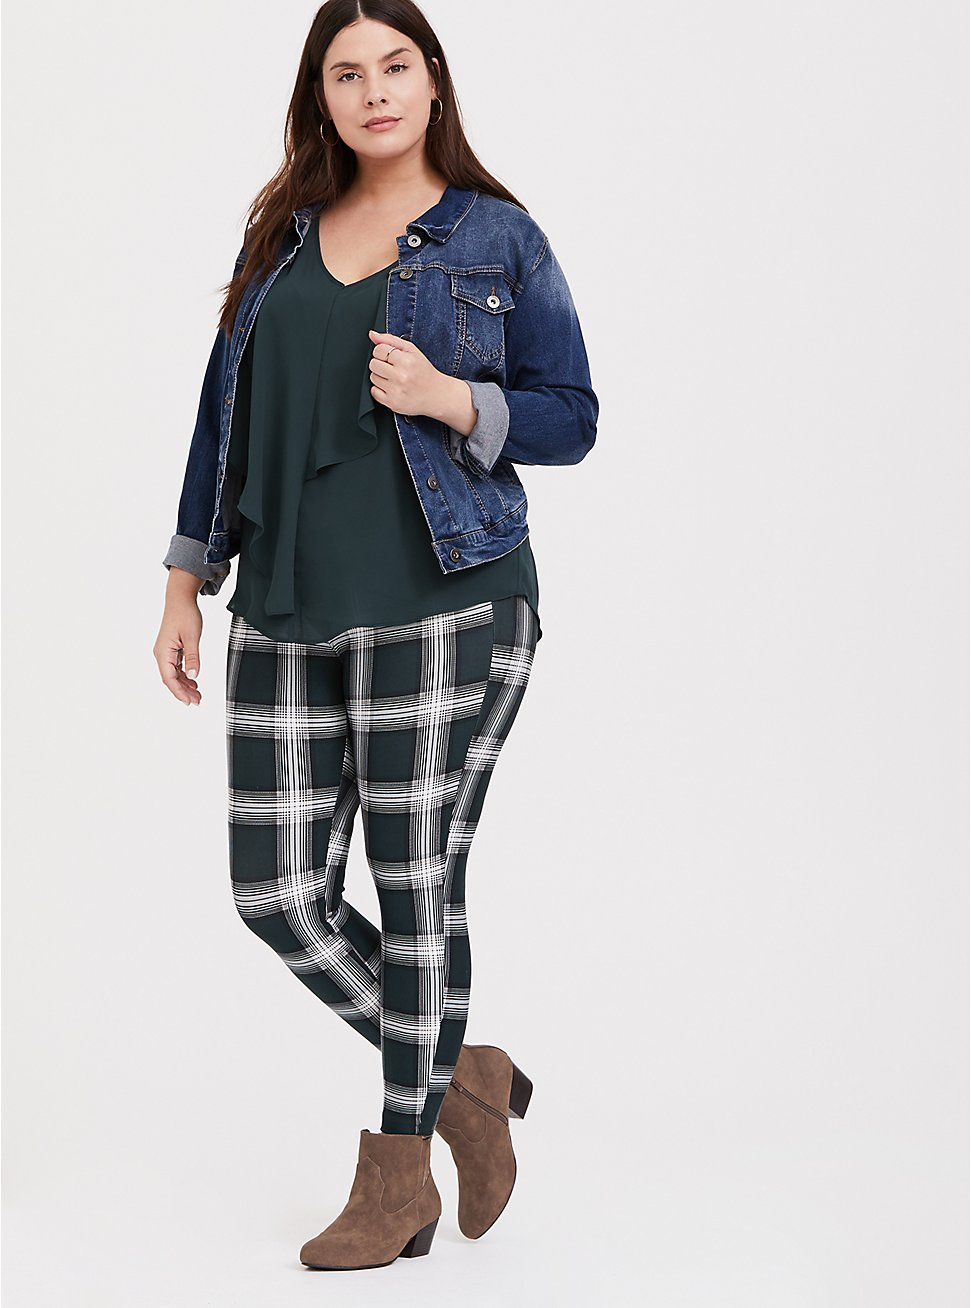 Studio Premium Ponte Slim Fix Pixie Pant - Dark Green Plaid, PLAID, hi-res